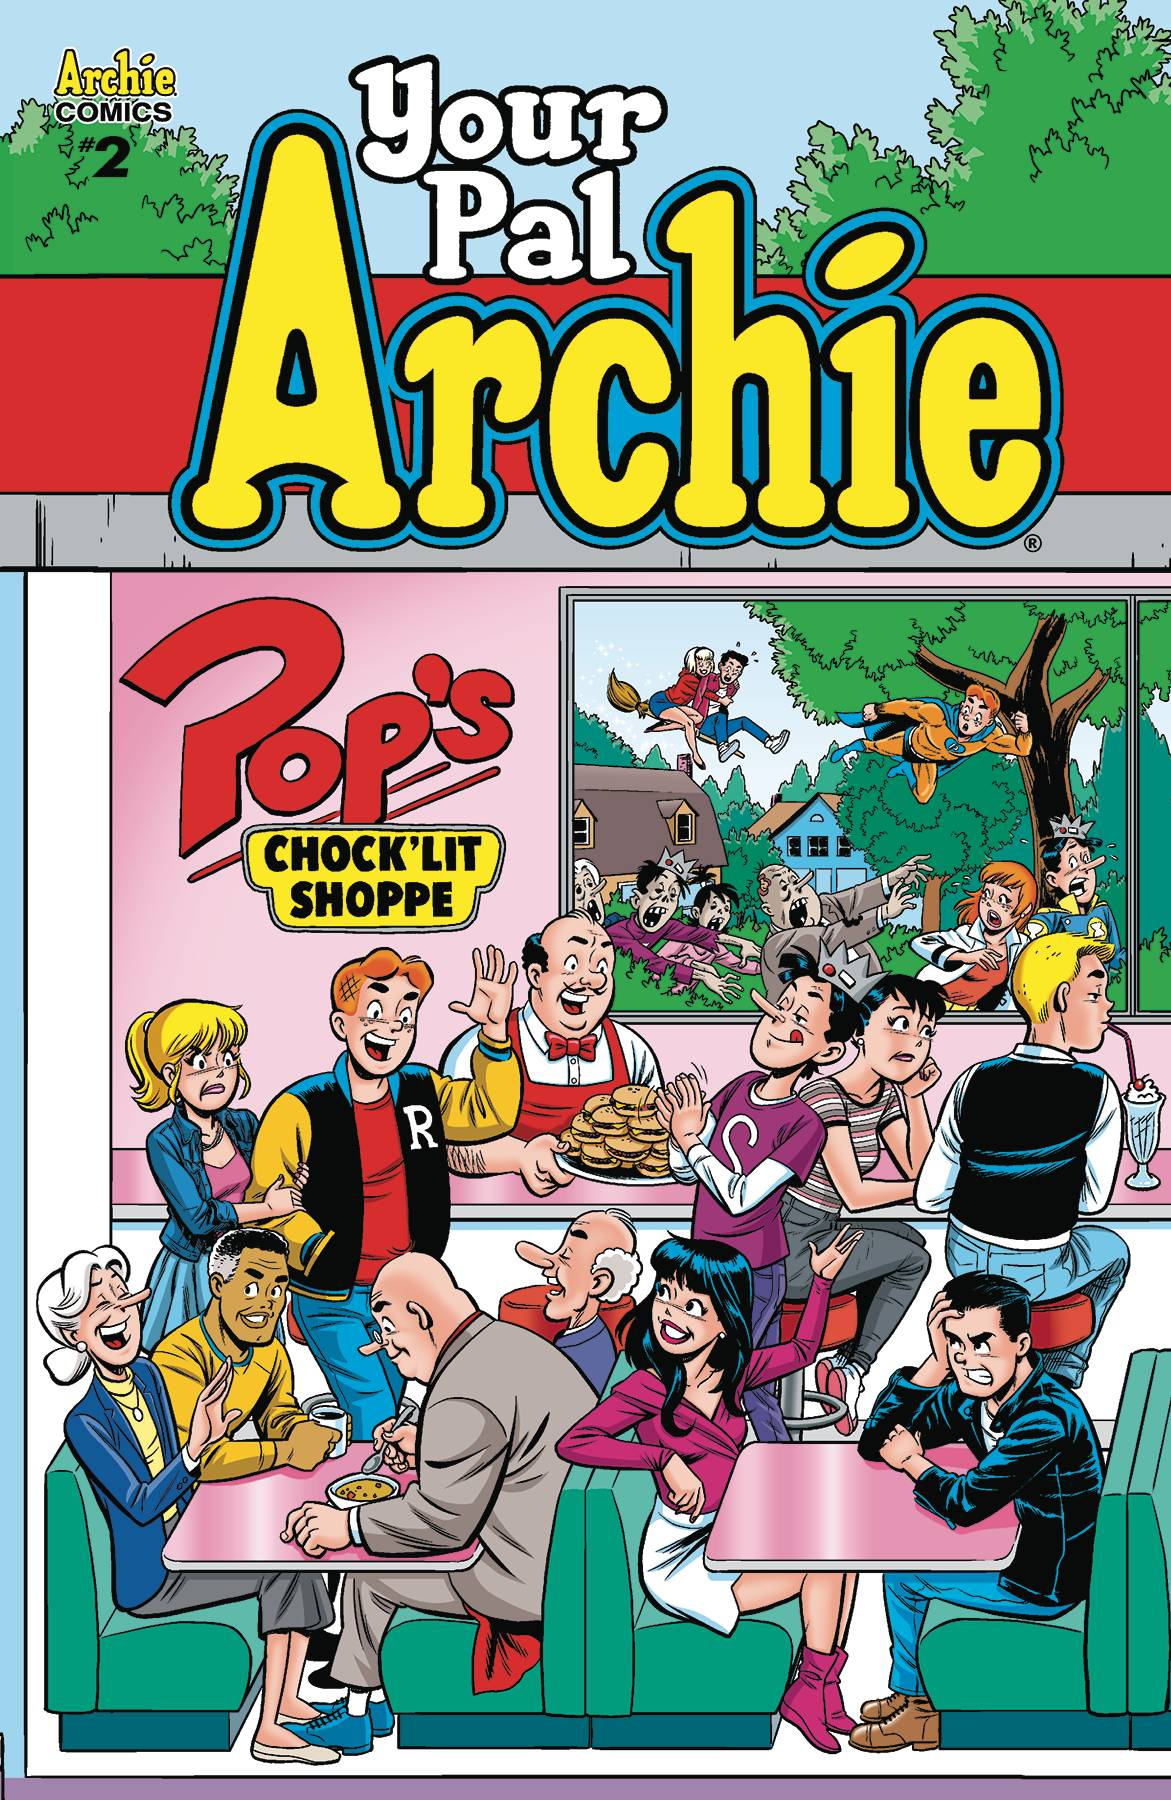 All New Classic Archie Your Pal Archie